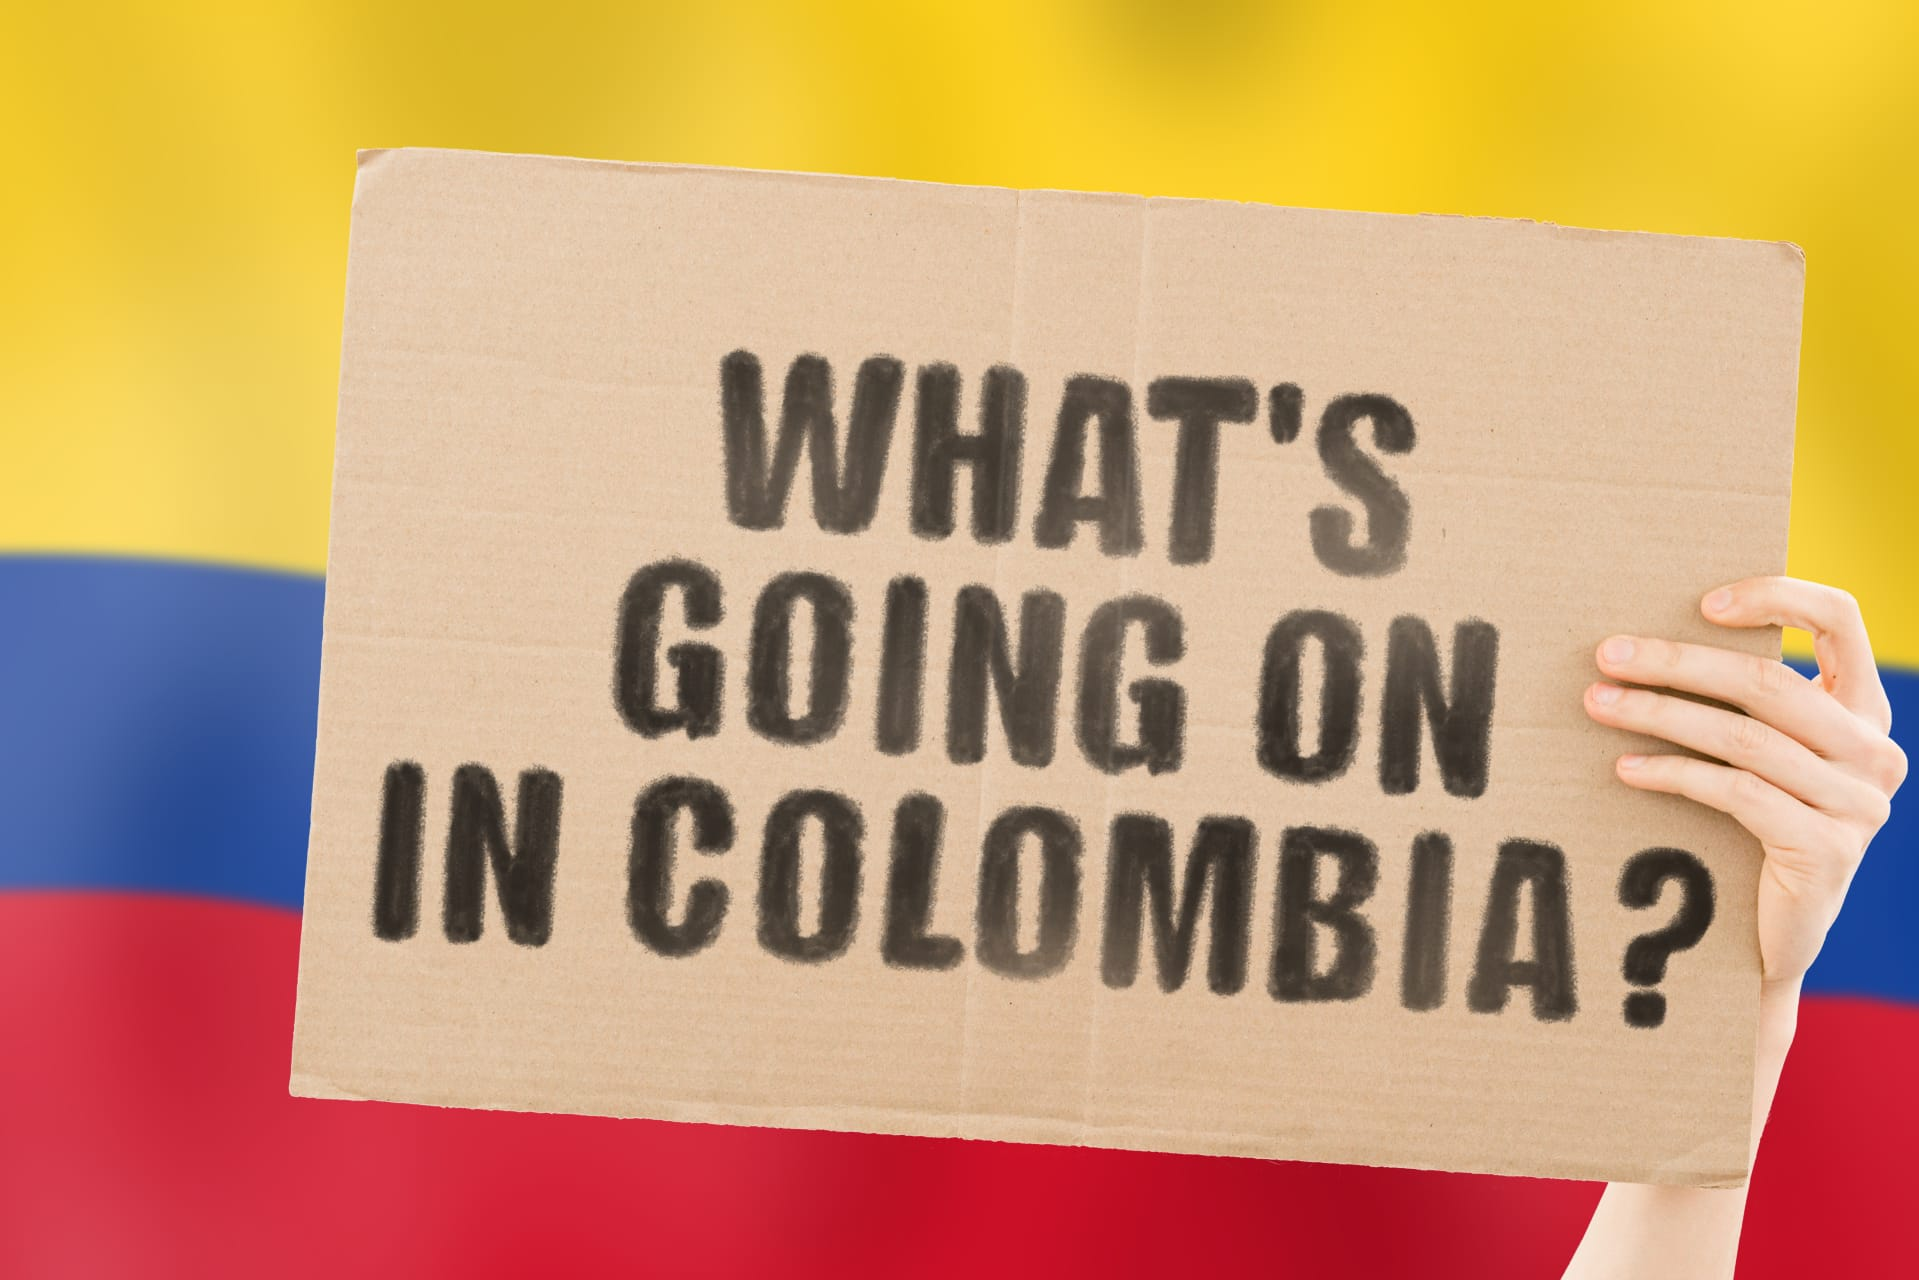 Bogota - Demonstrations in Colombia: Live protests from Bogota